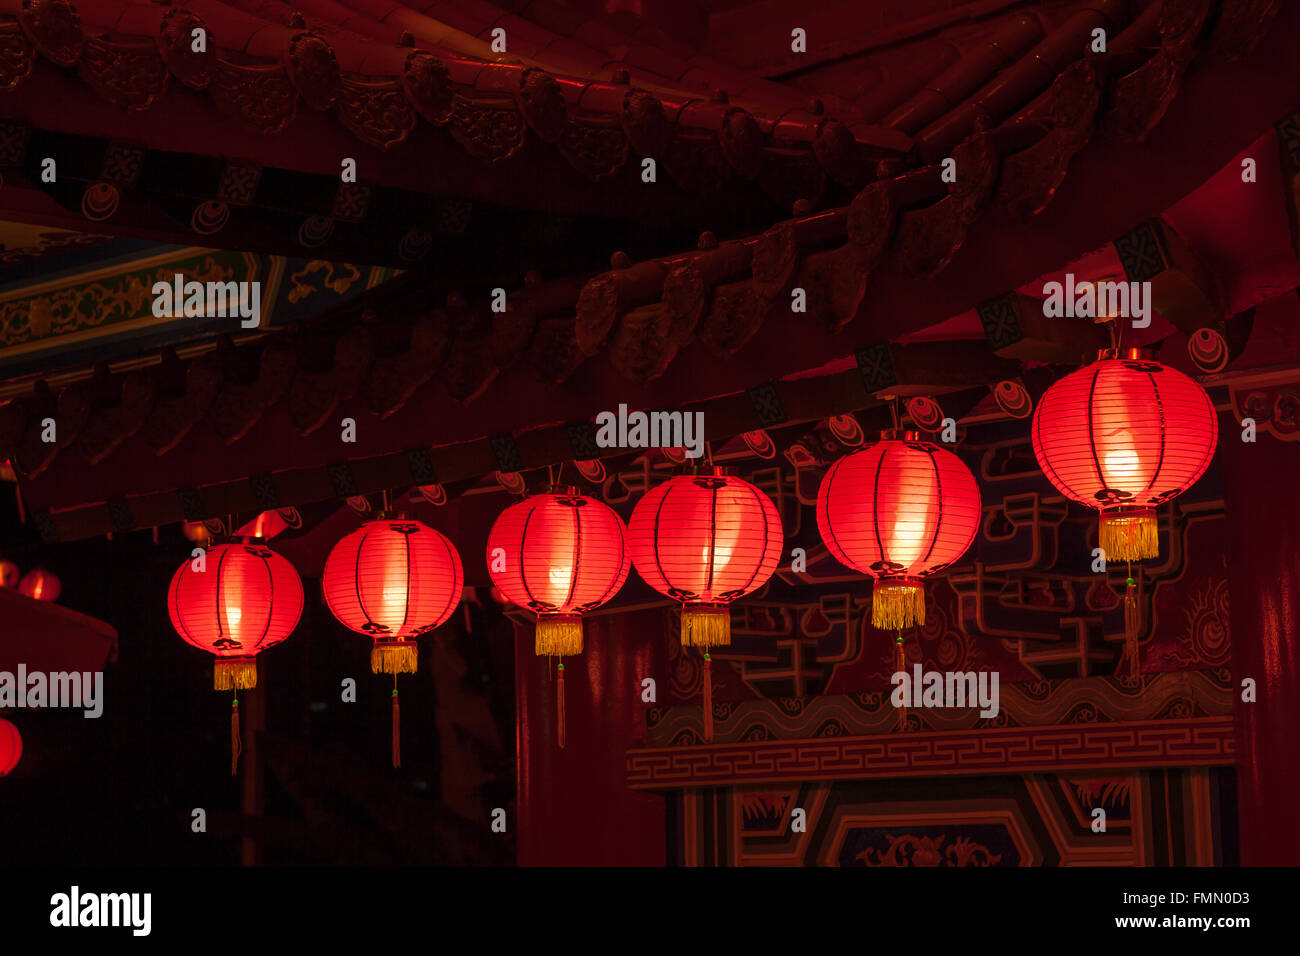 Red lanterns hanging in rows during chinese lunar new year at Thean Hou Temple, Kuala Lumpur, Malaysia - Stock Image